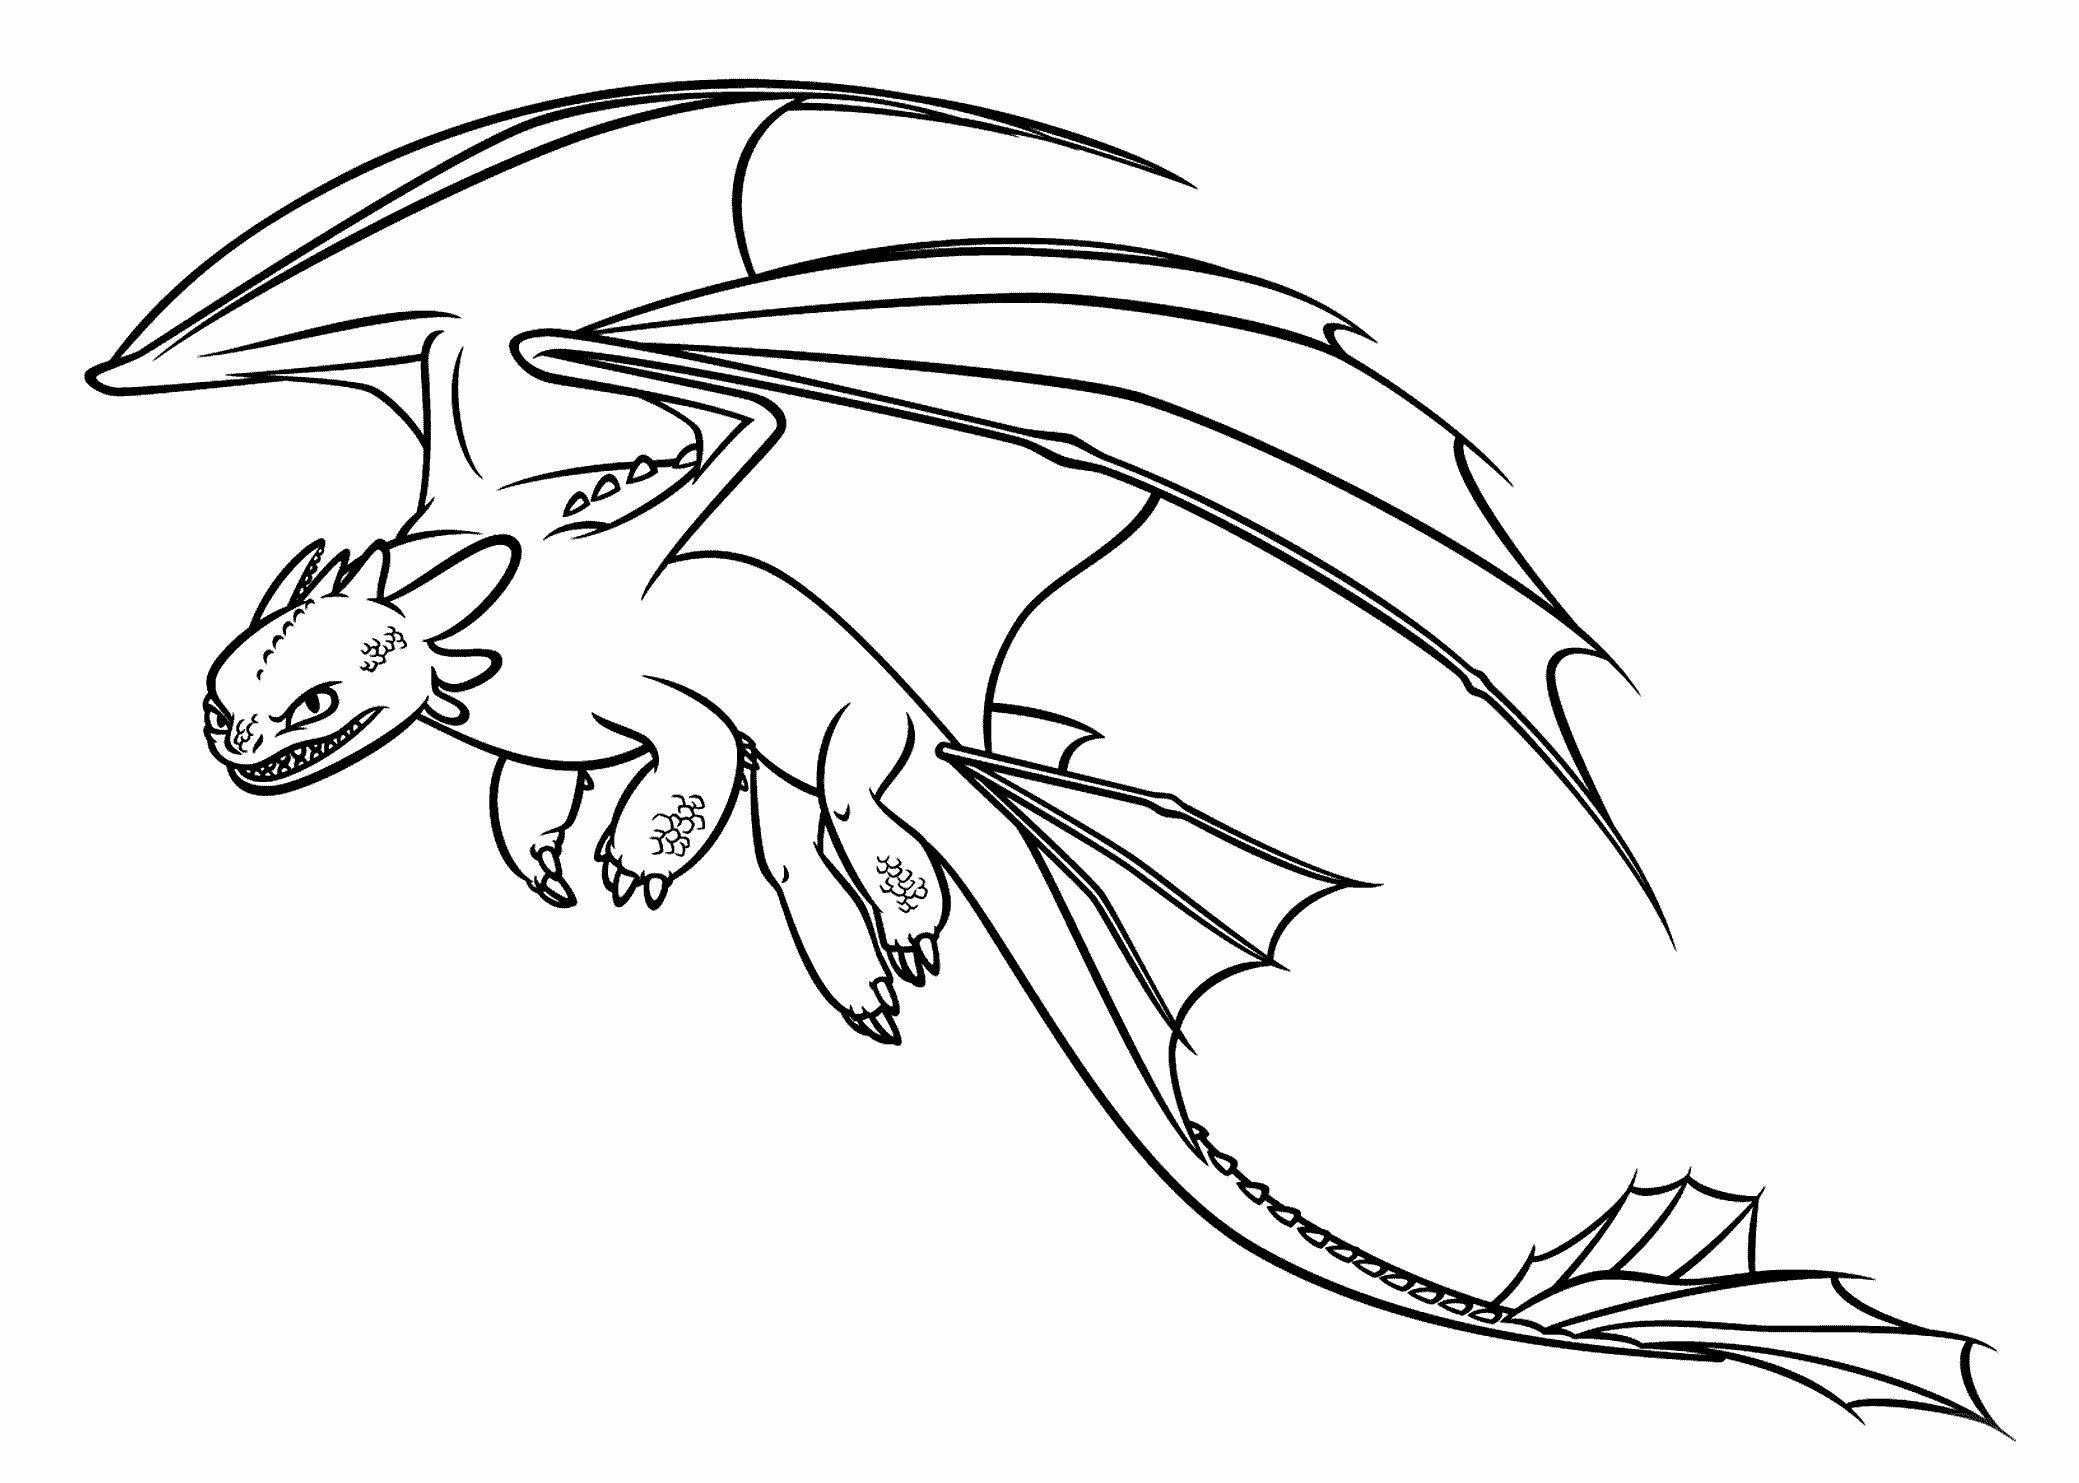 28 Baby Dragon Coloring Page In 2020 Dragon Coloring Page How